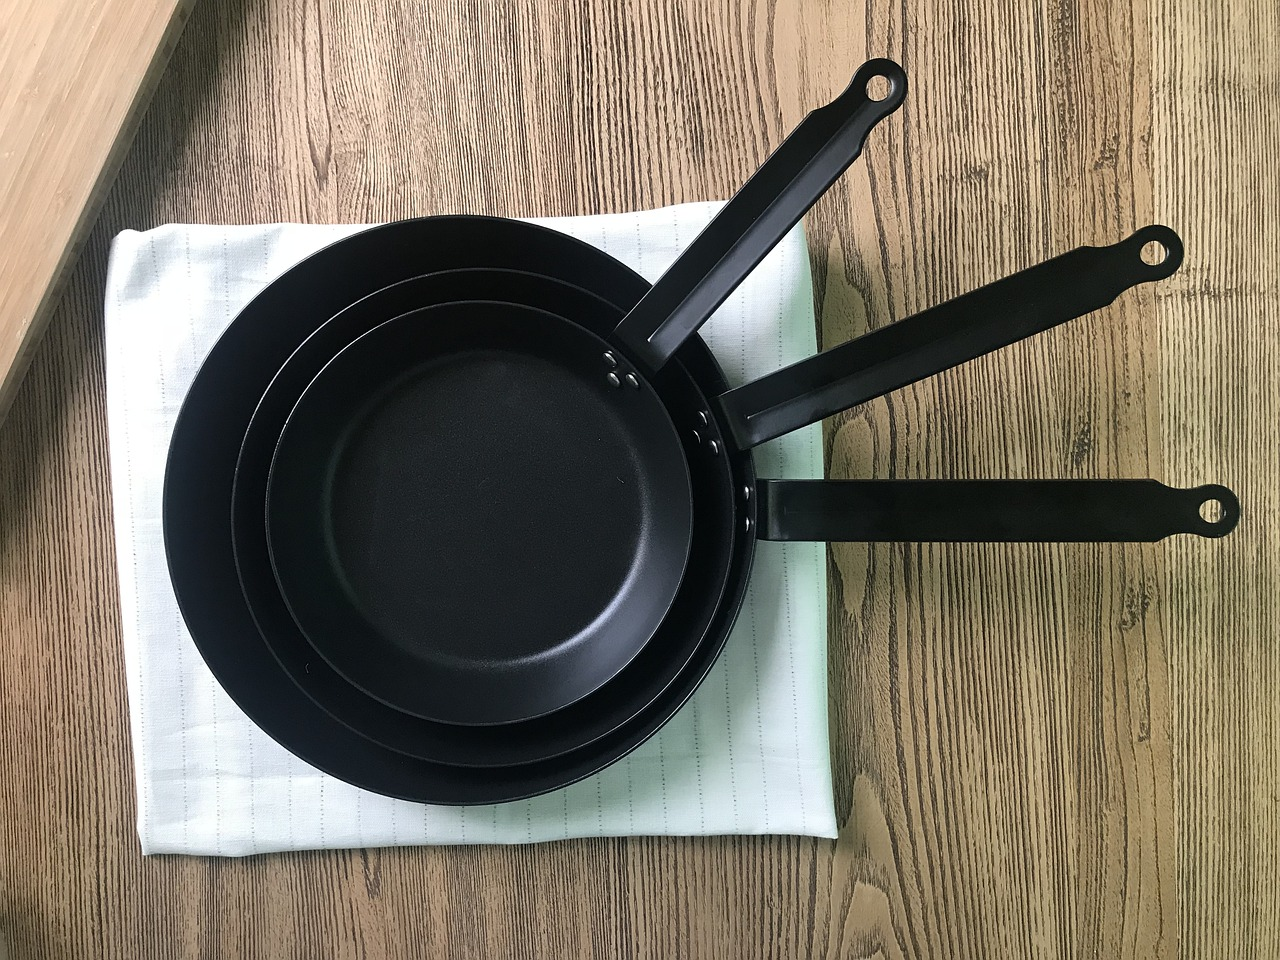 cast iron cast iron pot carbon steel free photo